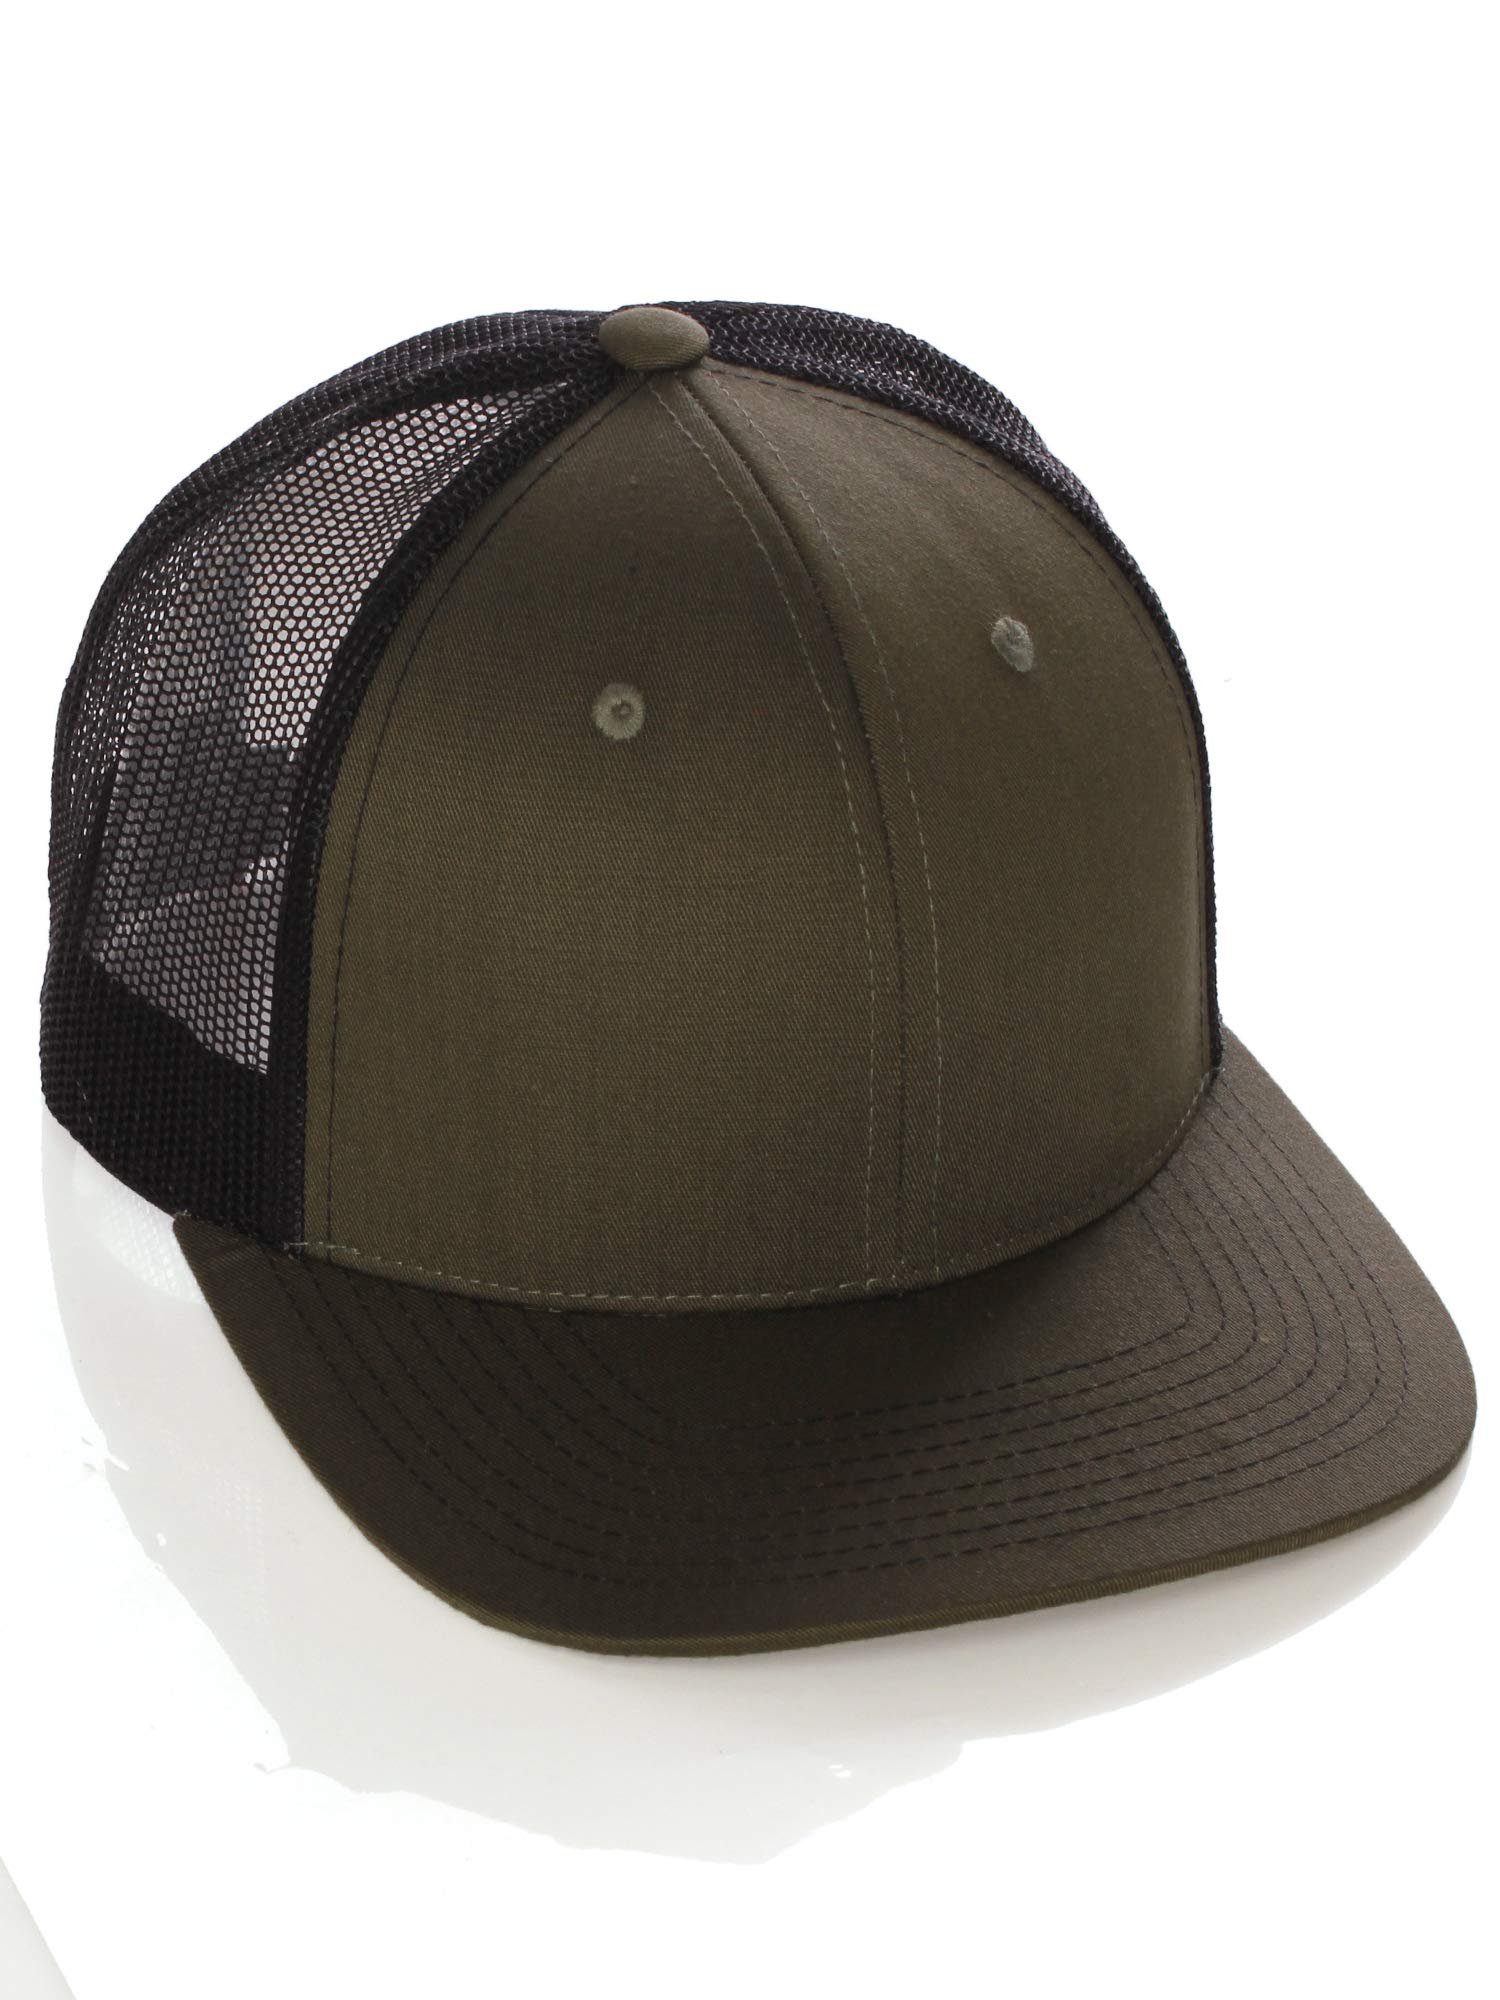 I W Hatgear Vintage Retro Style Plain Two Tone Trucker Hat Adjustable  Snapback Baseball Cap - Olive Black d640b7f0d08e